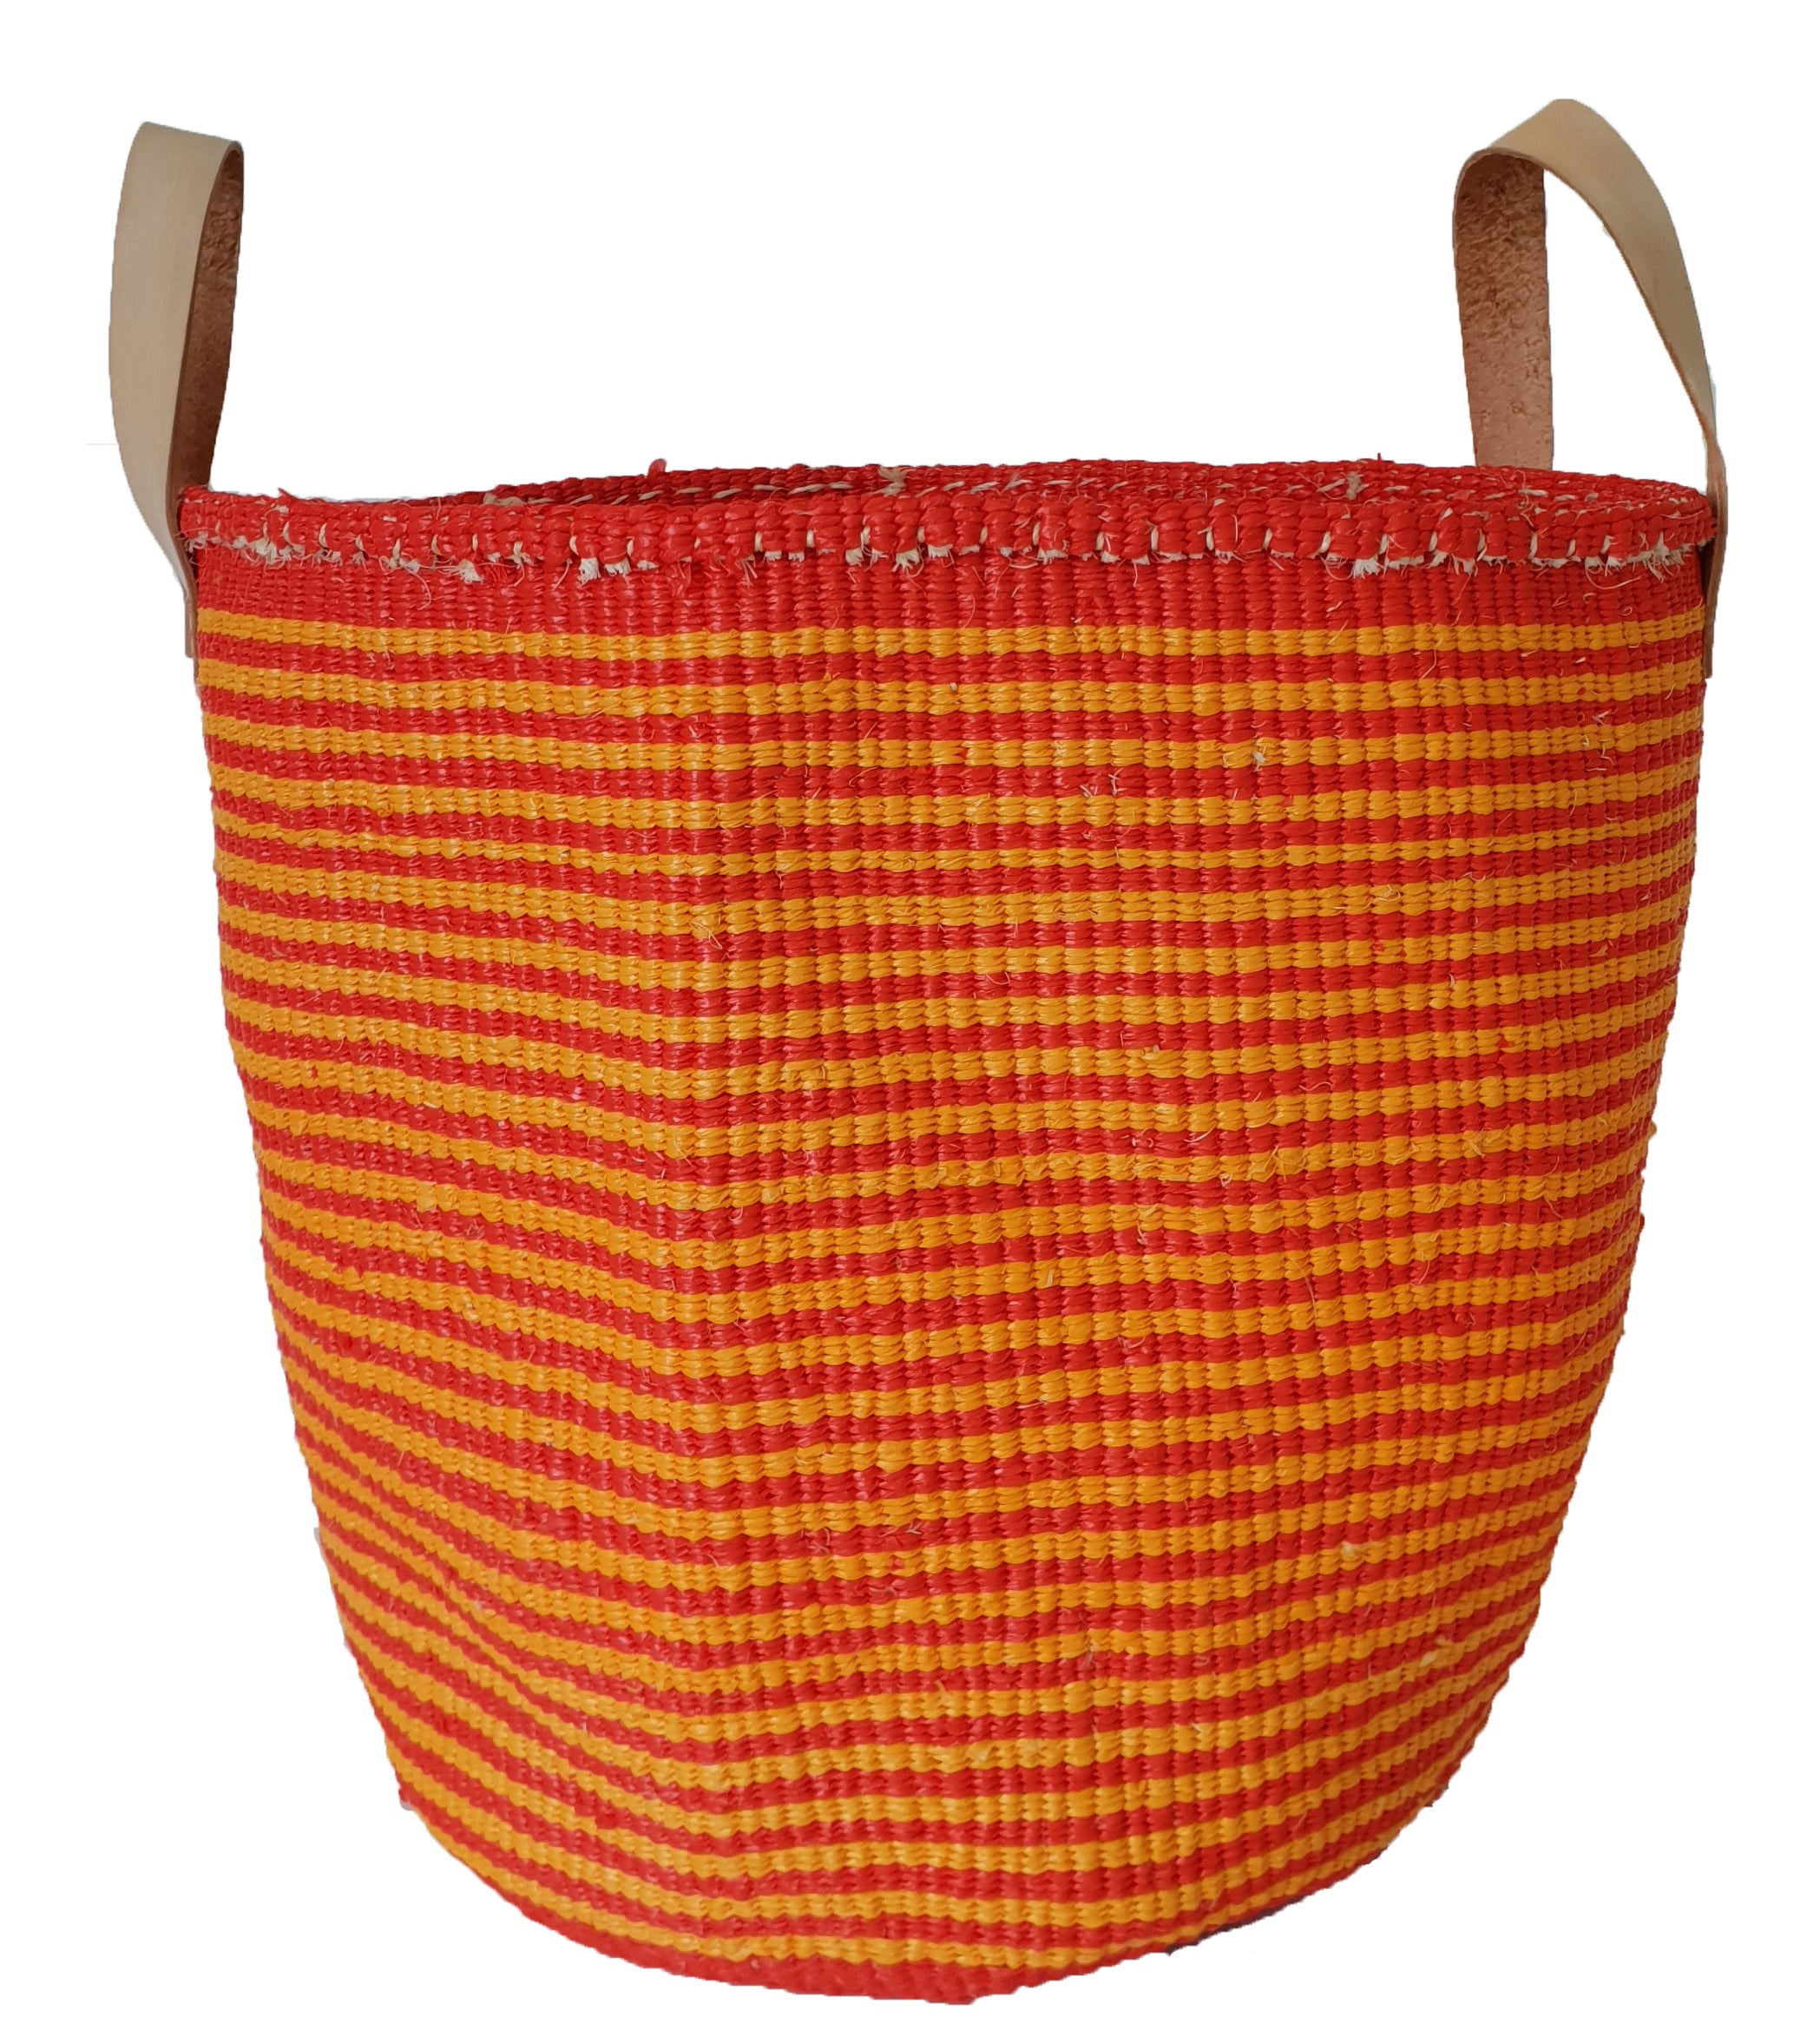 COLOUR YOUR WORLD kiondo // SlimStripe Natural sisal + polythene + leather handles